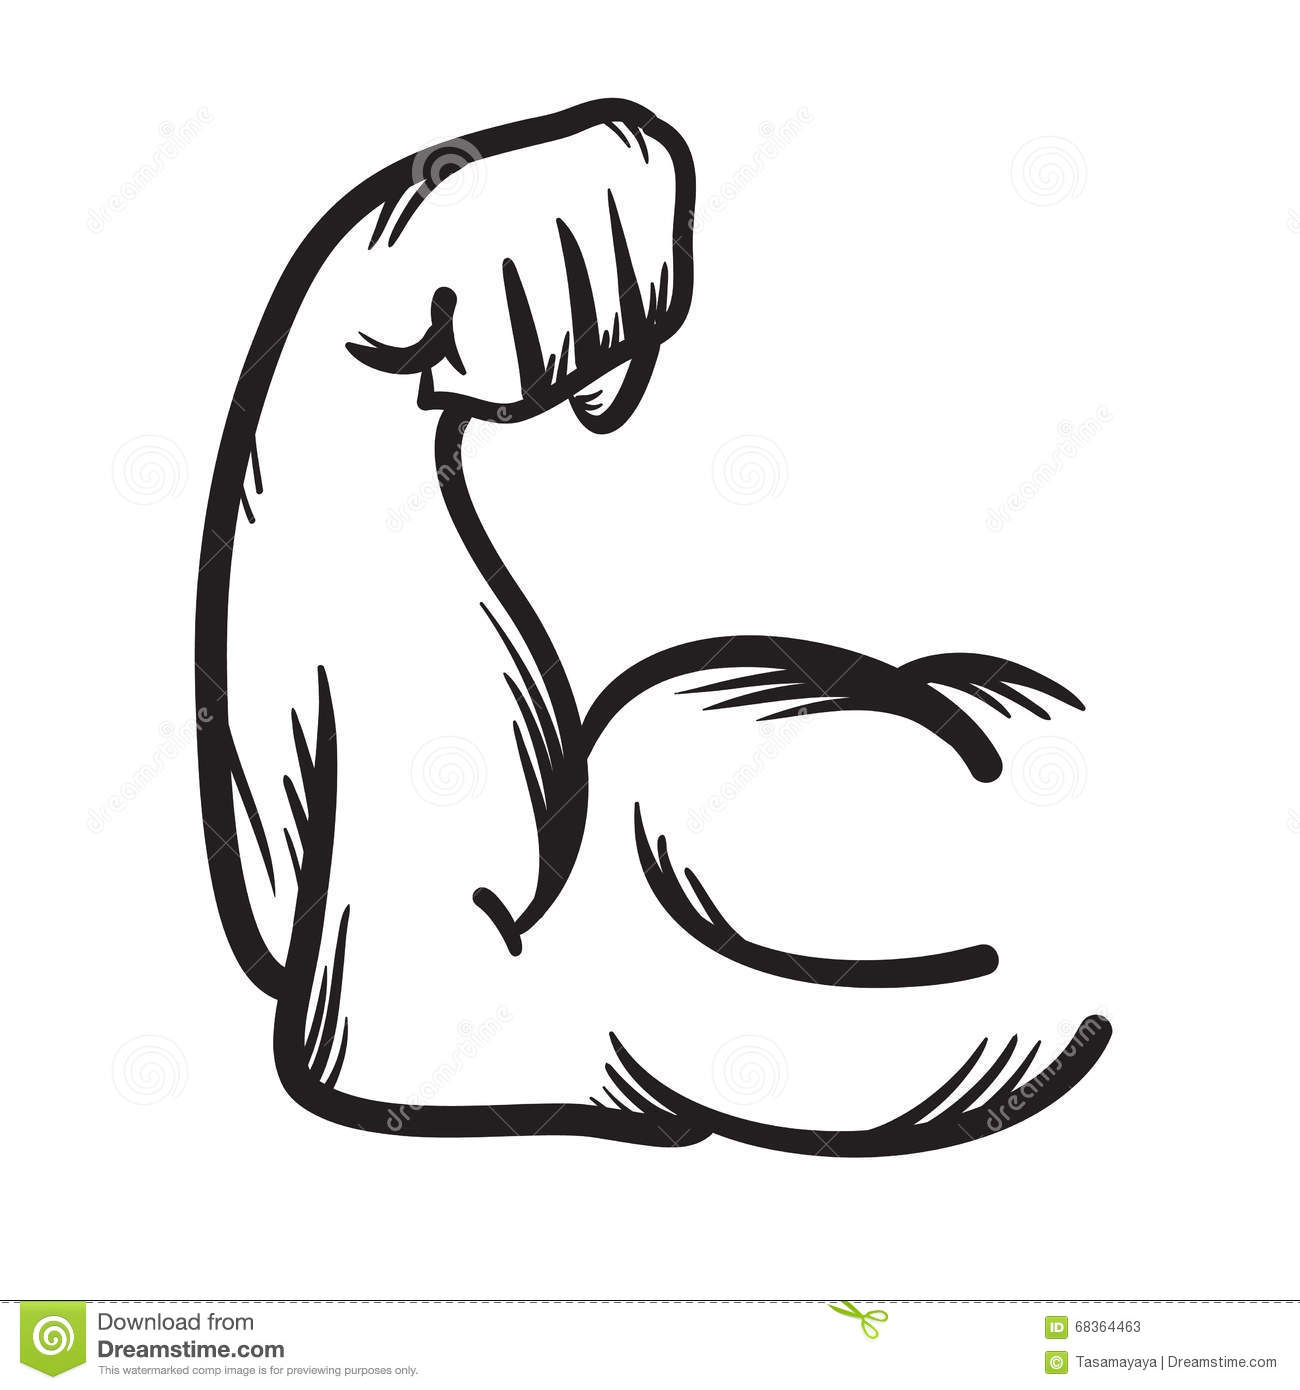 Muscle Arm Icon